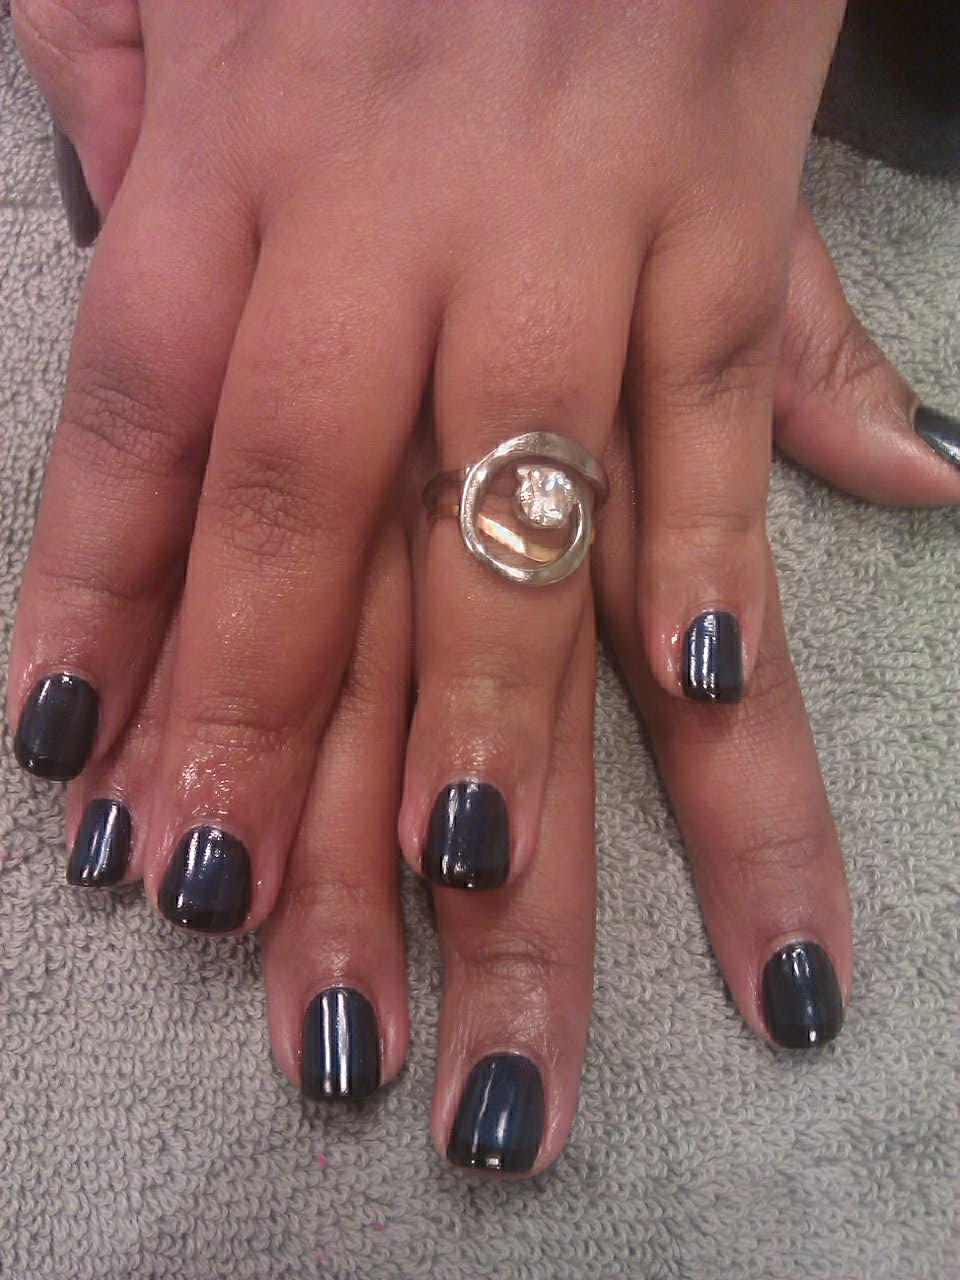 My Monday Manicure - Adventures in Shellac Nail Polish | Afrobella